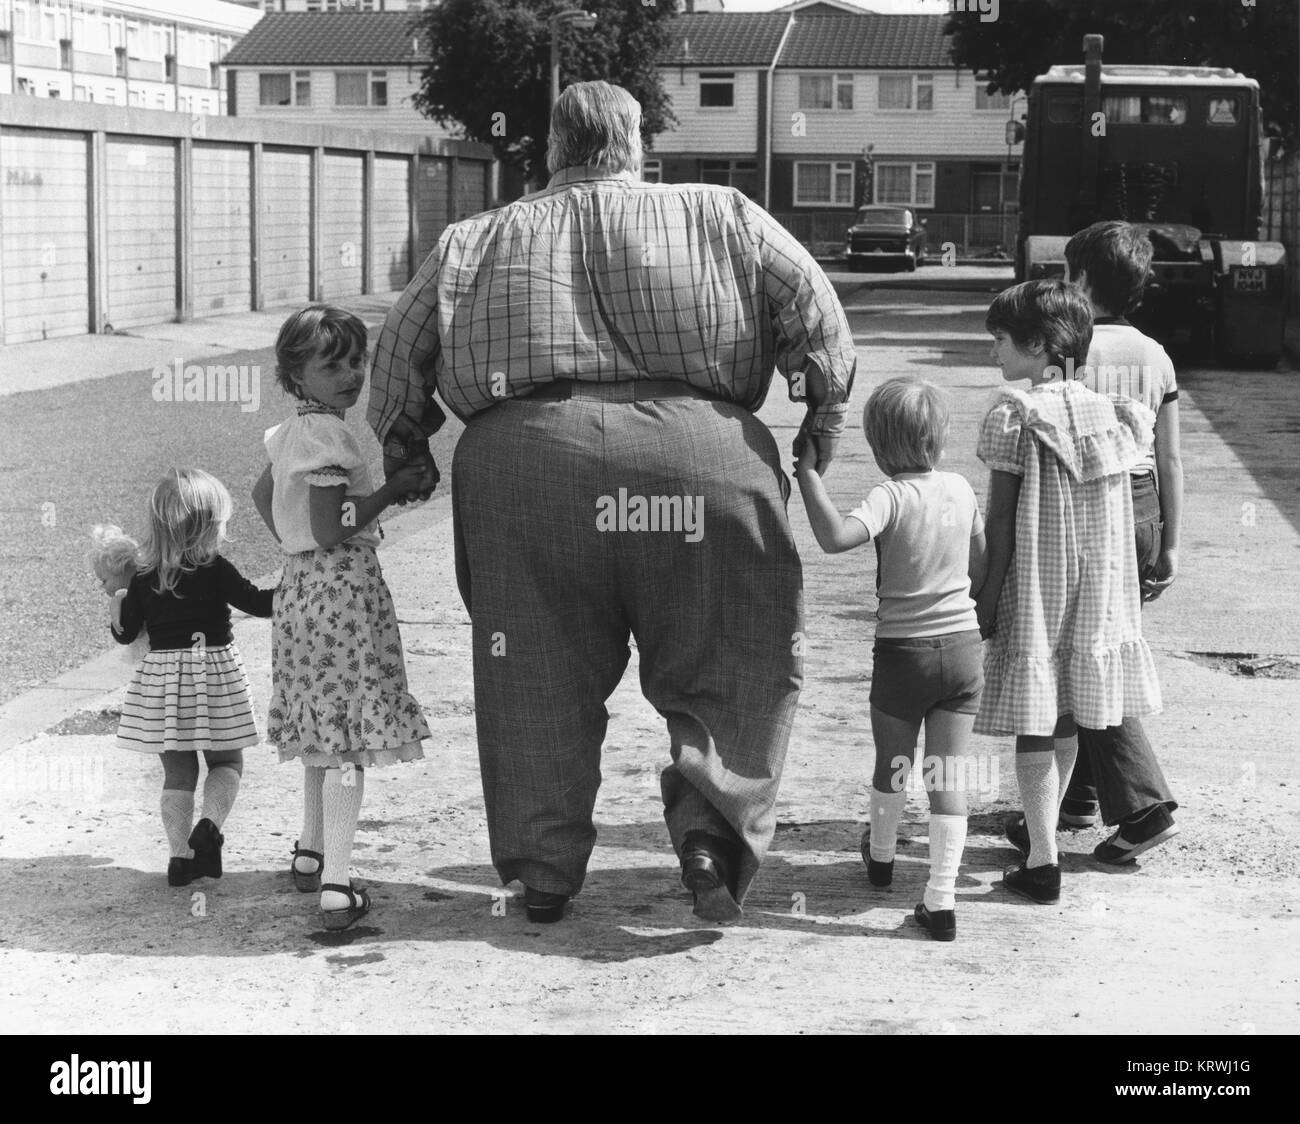 Big man with children, England, Great Britain - Stock Image